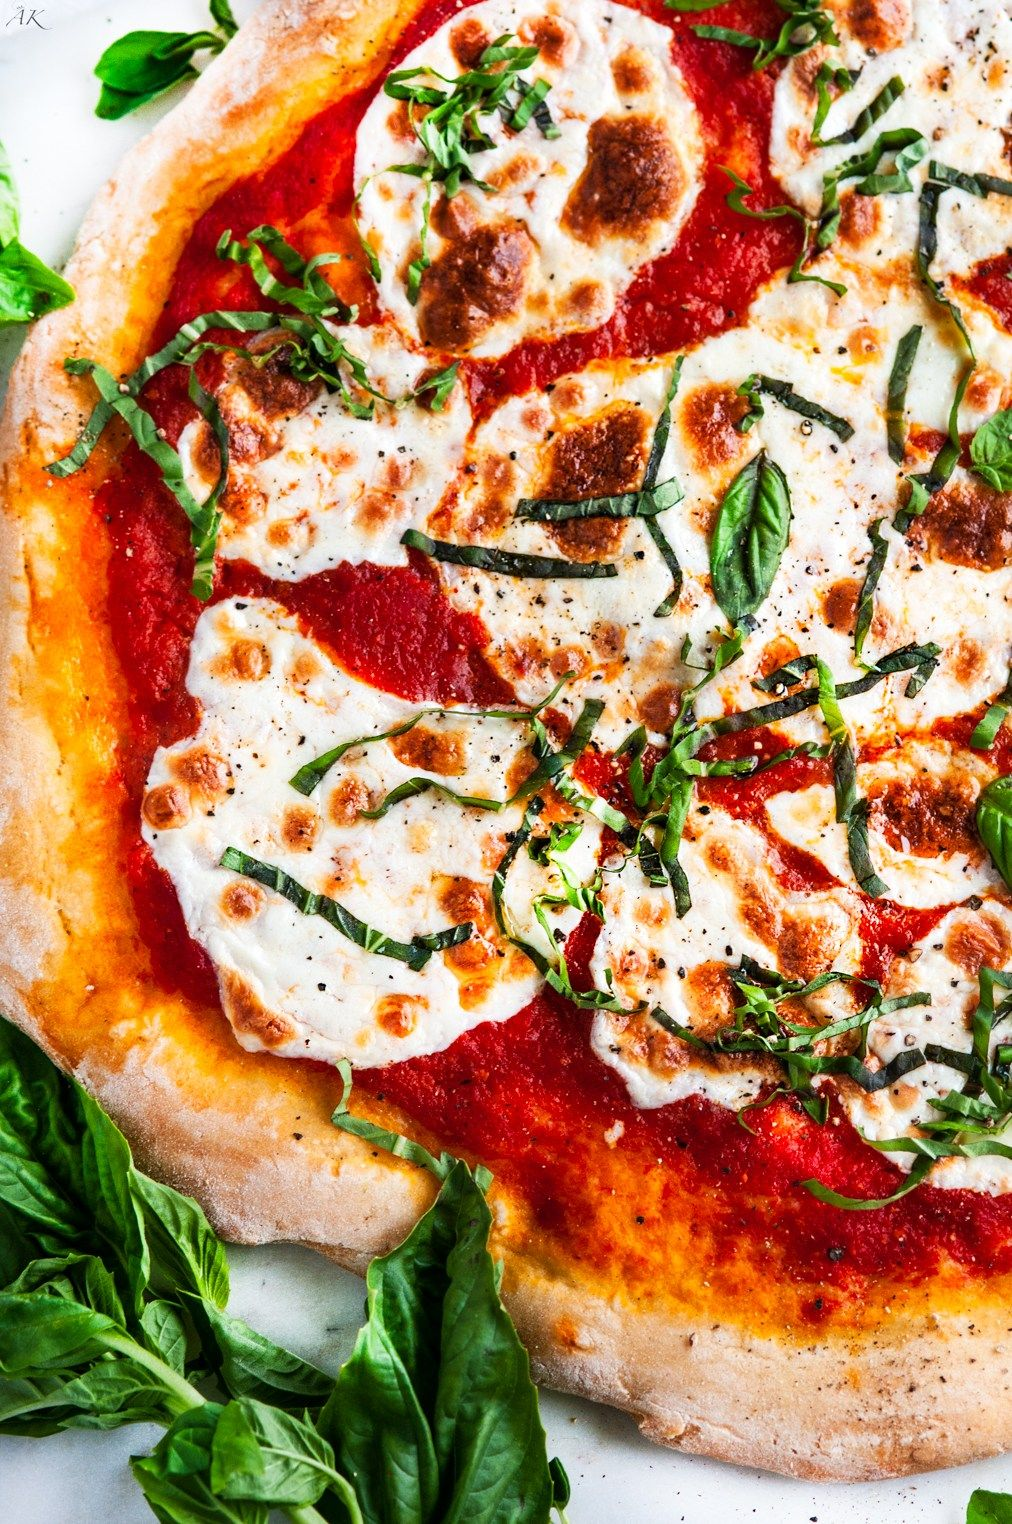 Margherita Pizza With Homemade Crust Recept Eda Vkusnaya Eda Picca